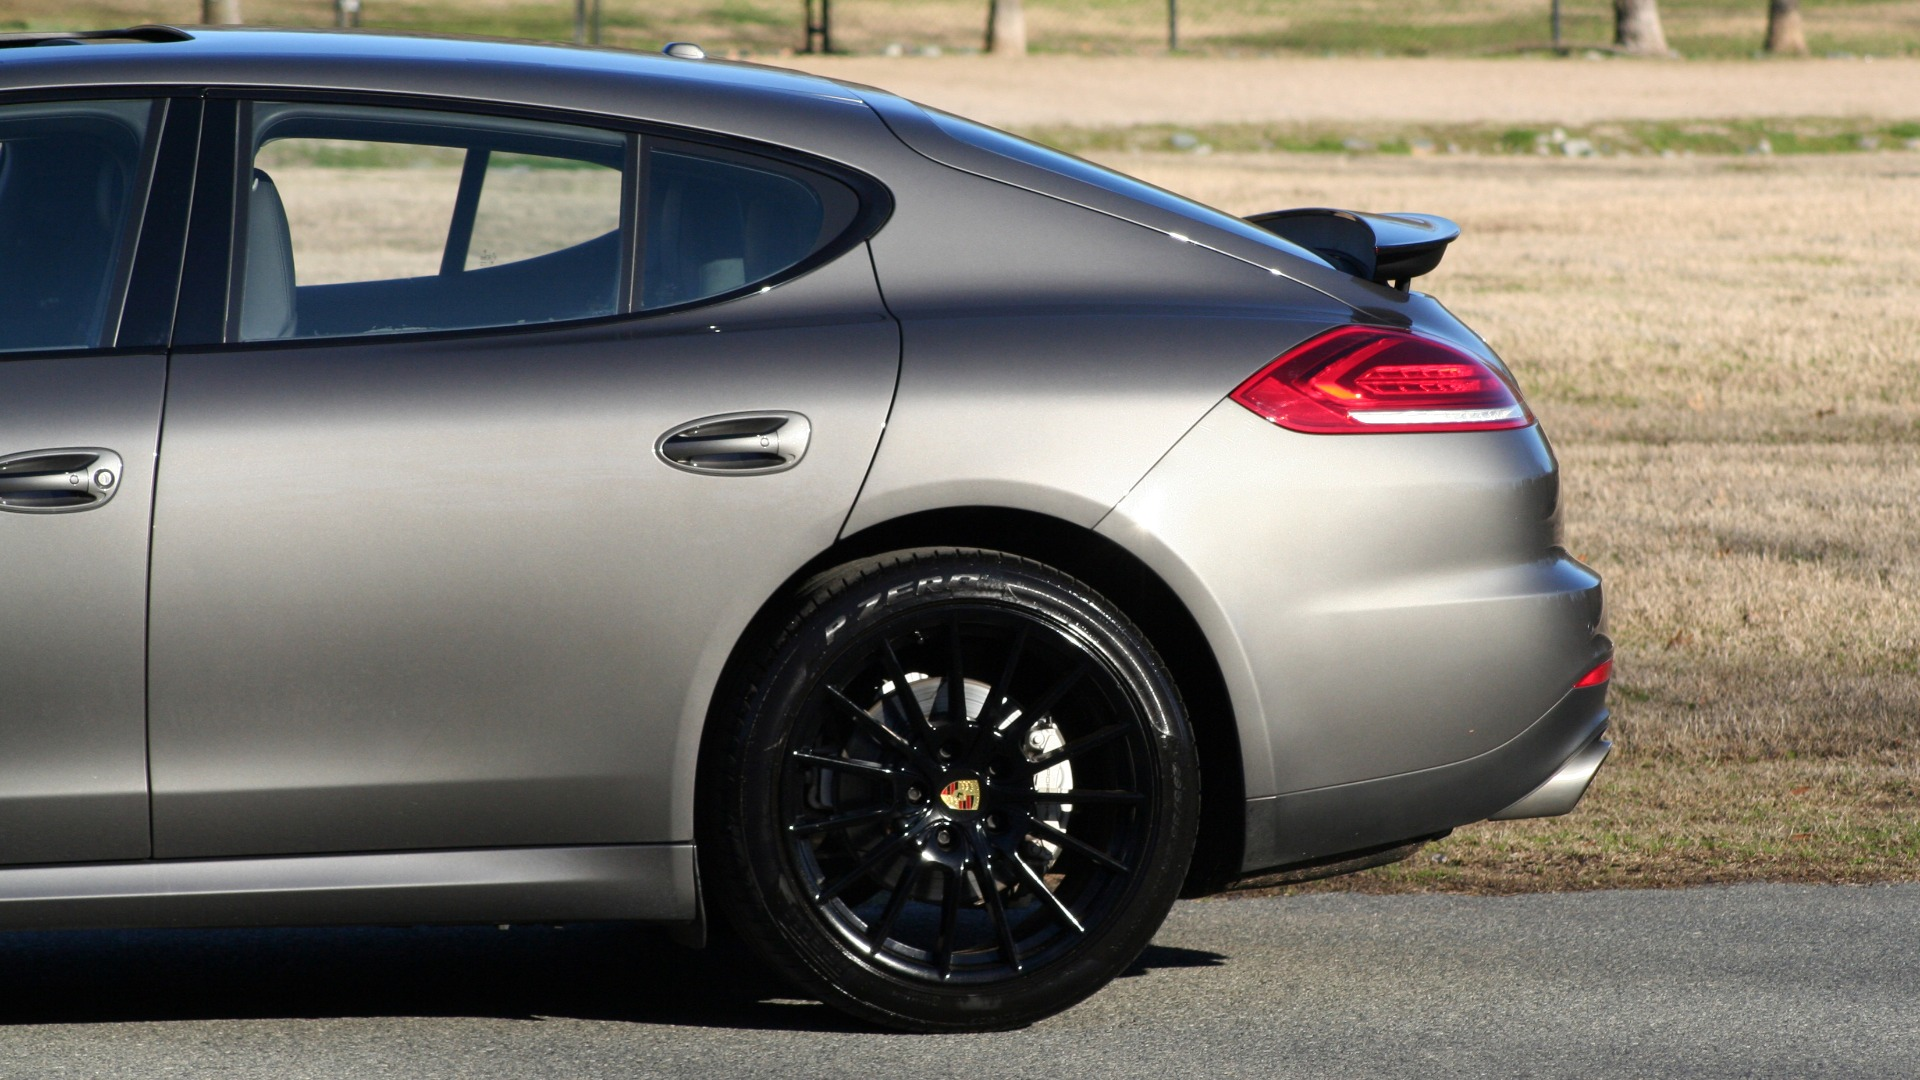 Used 2016 Porsche PANAMERA S / TURBO V6 / PDK / NAV / BOSE / SNRF / LDW / REARVIEW for sale Sold at Formula Imports in Charlotte NC 28227 5